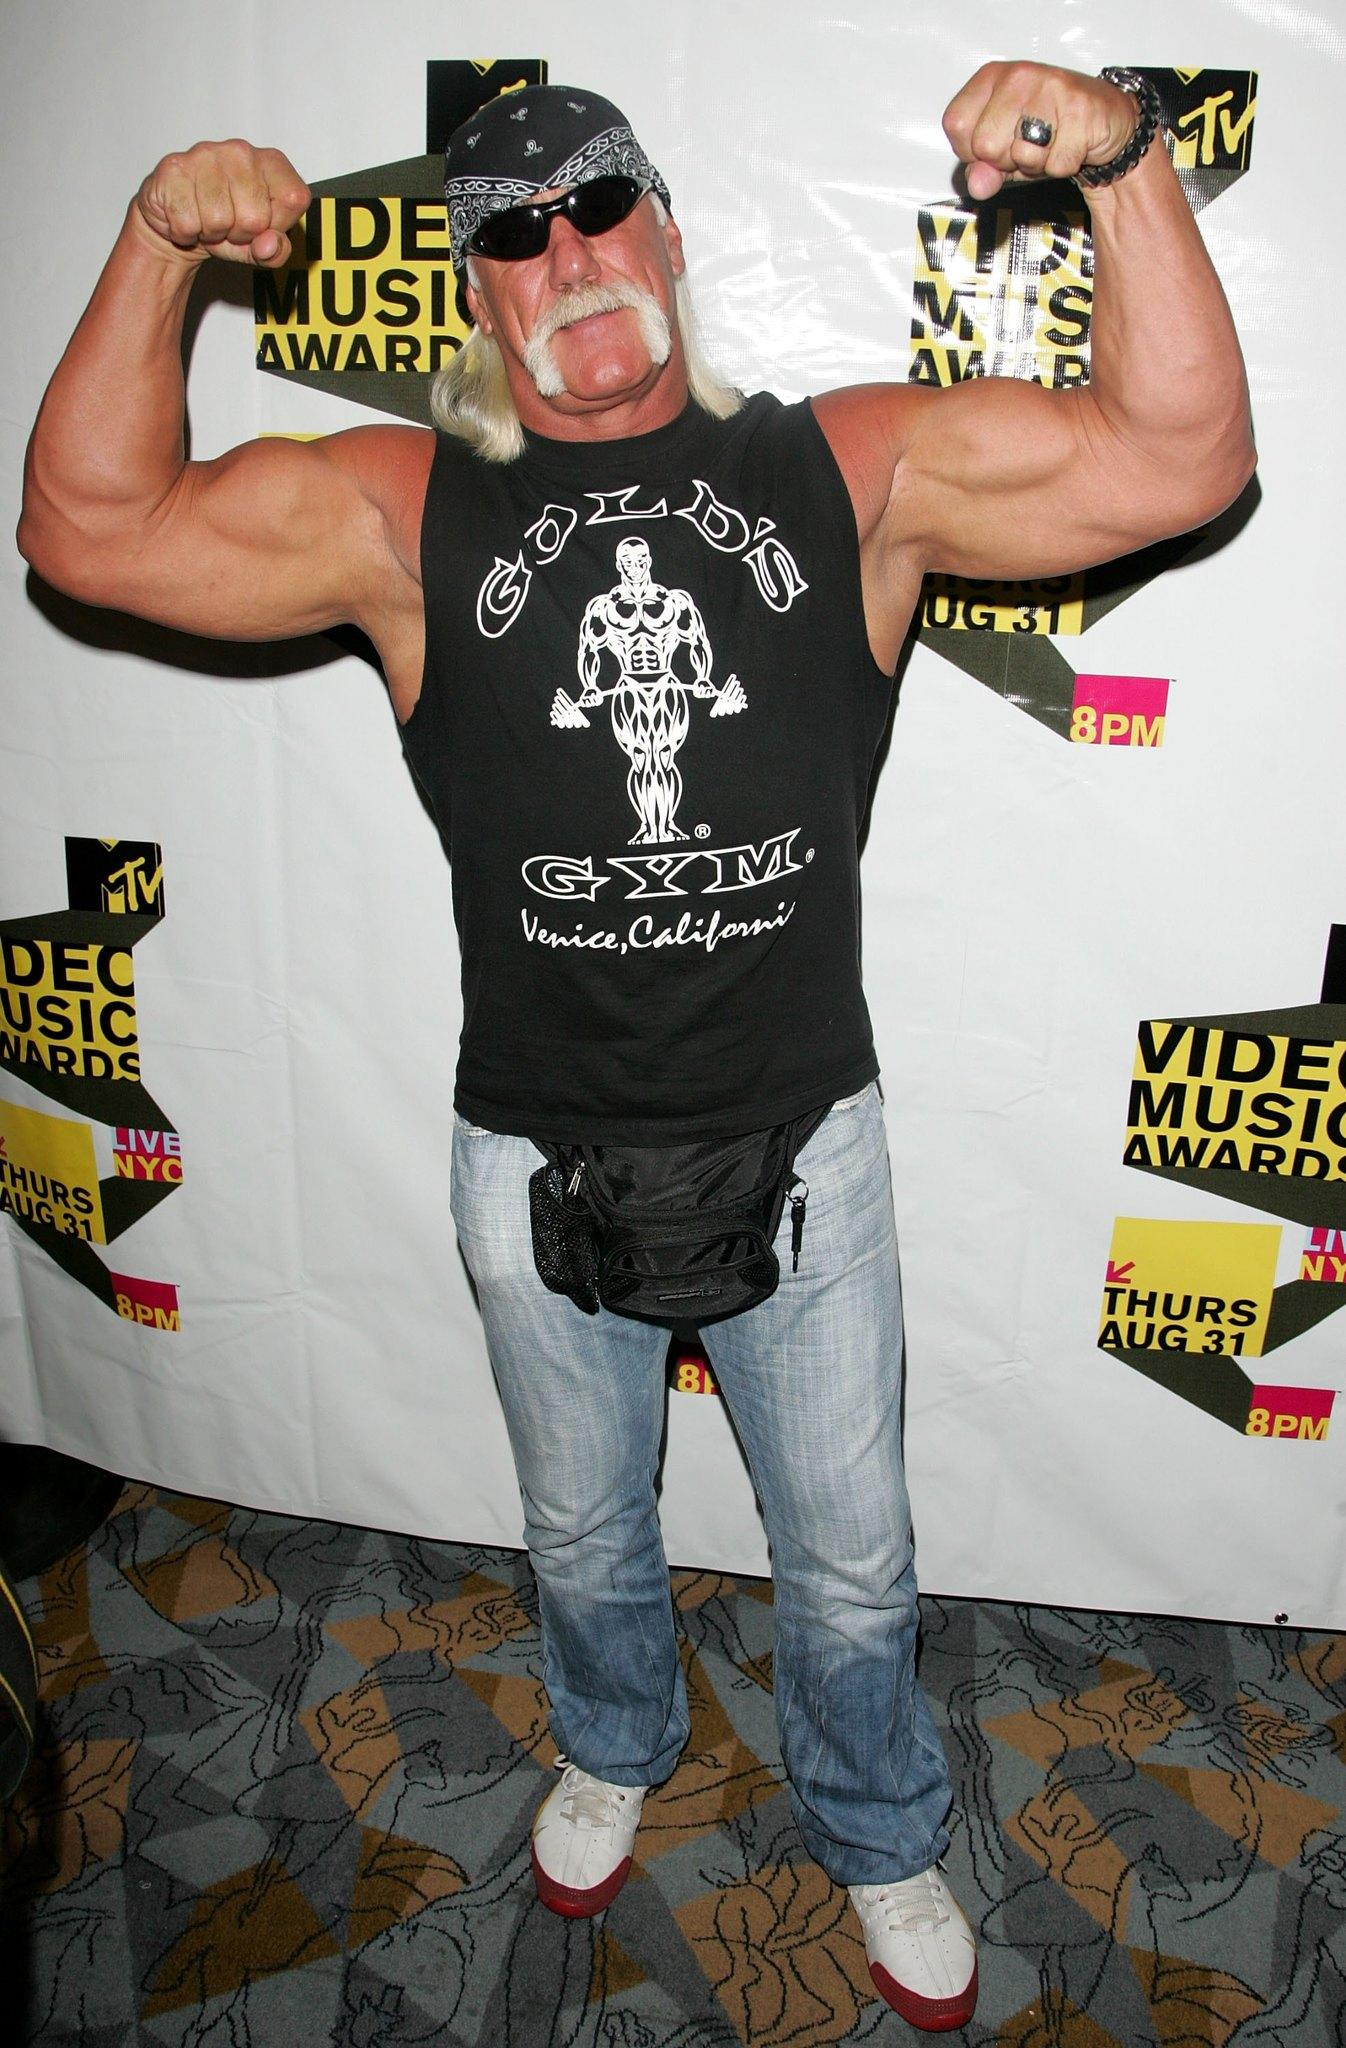 Wrestler Hulk Hogan arrives at the MTV 2006 Video Music Awards Forum at Radio City Music Hall in the Grand Lounge on August 30, 2006 in New York City.